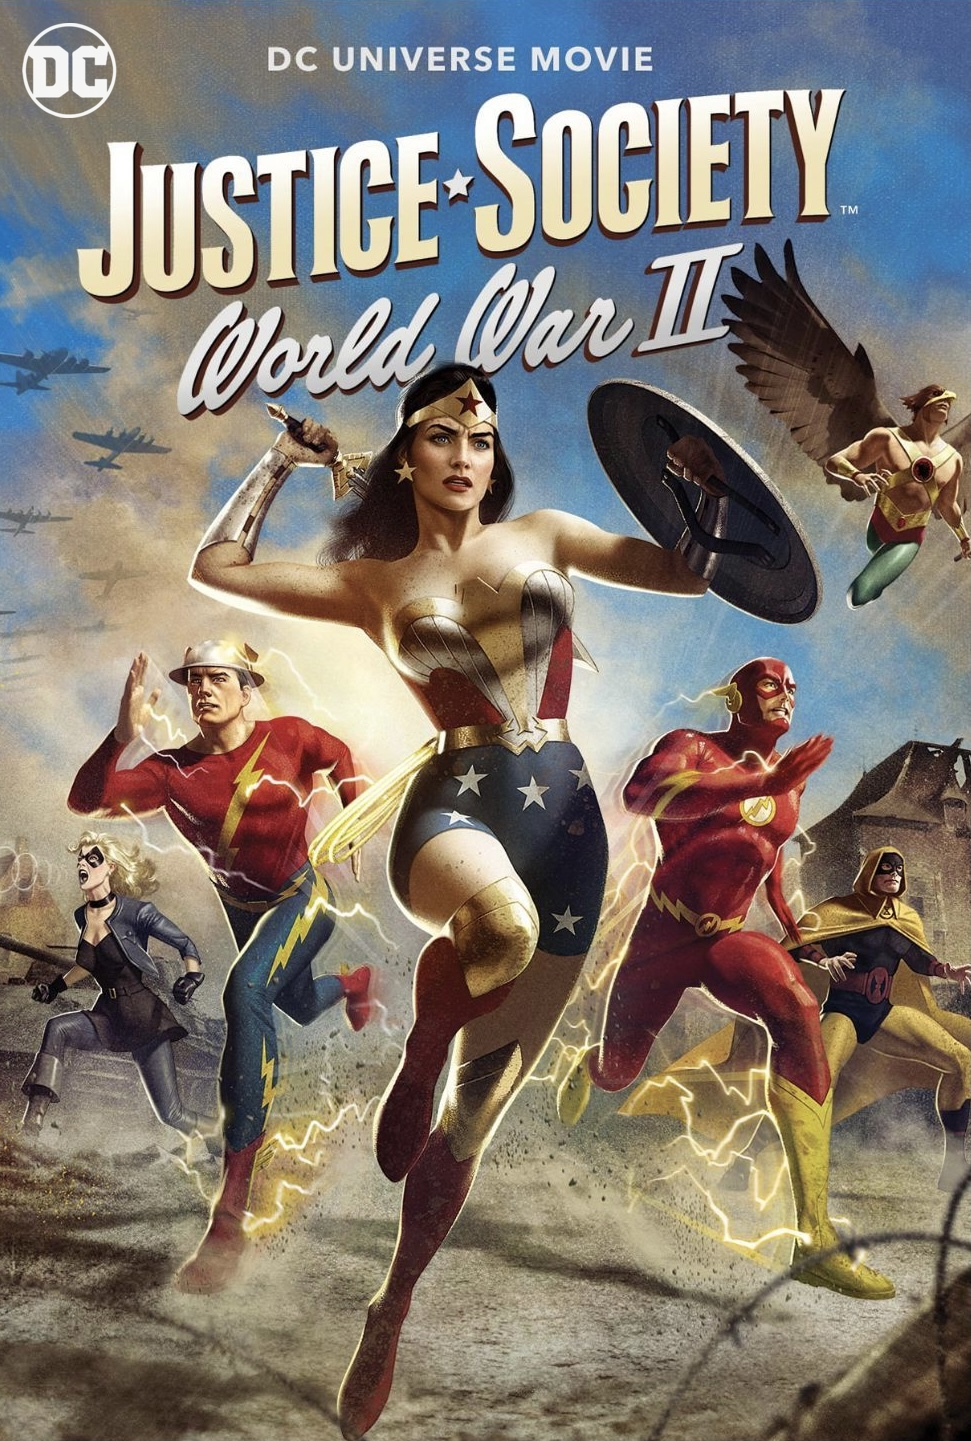 Justice Society World War II (2021) Full Movie [In English] With Hindi Subtitles | WebRip 720p [1XBET]